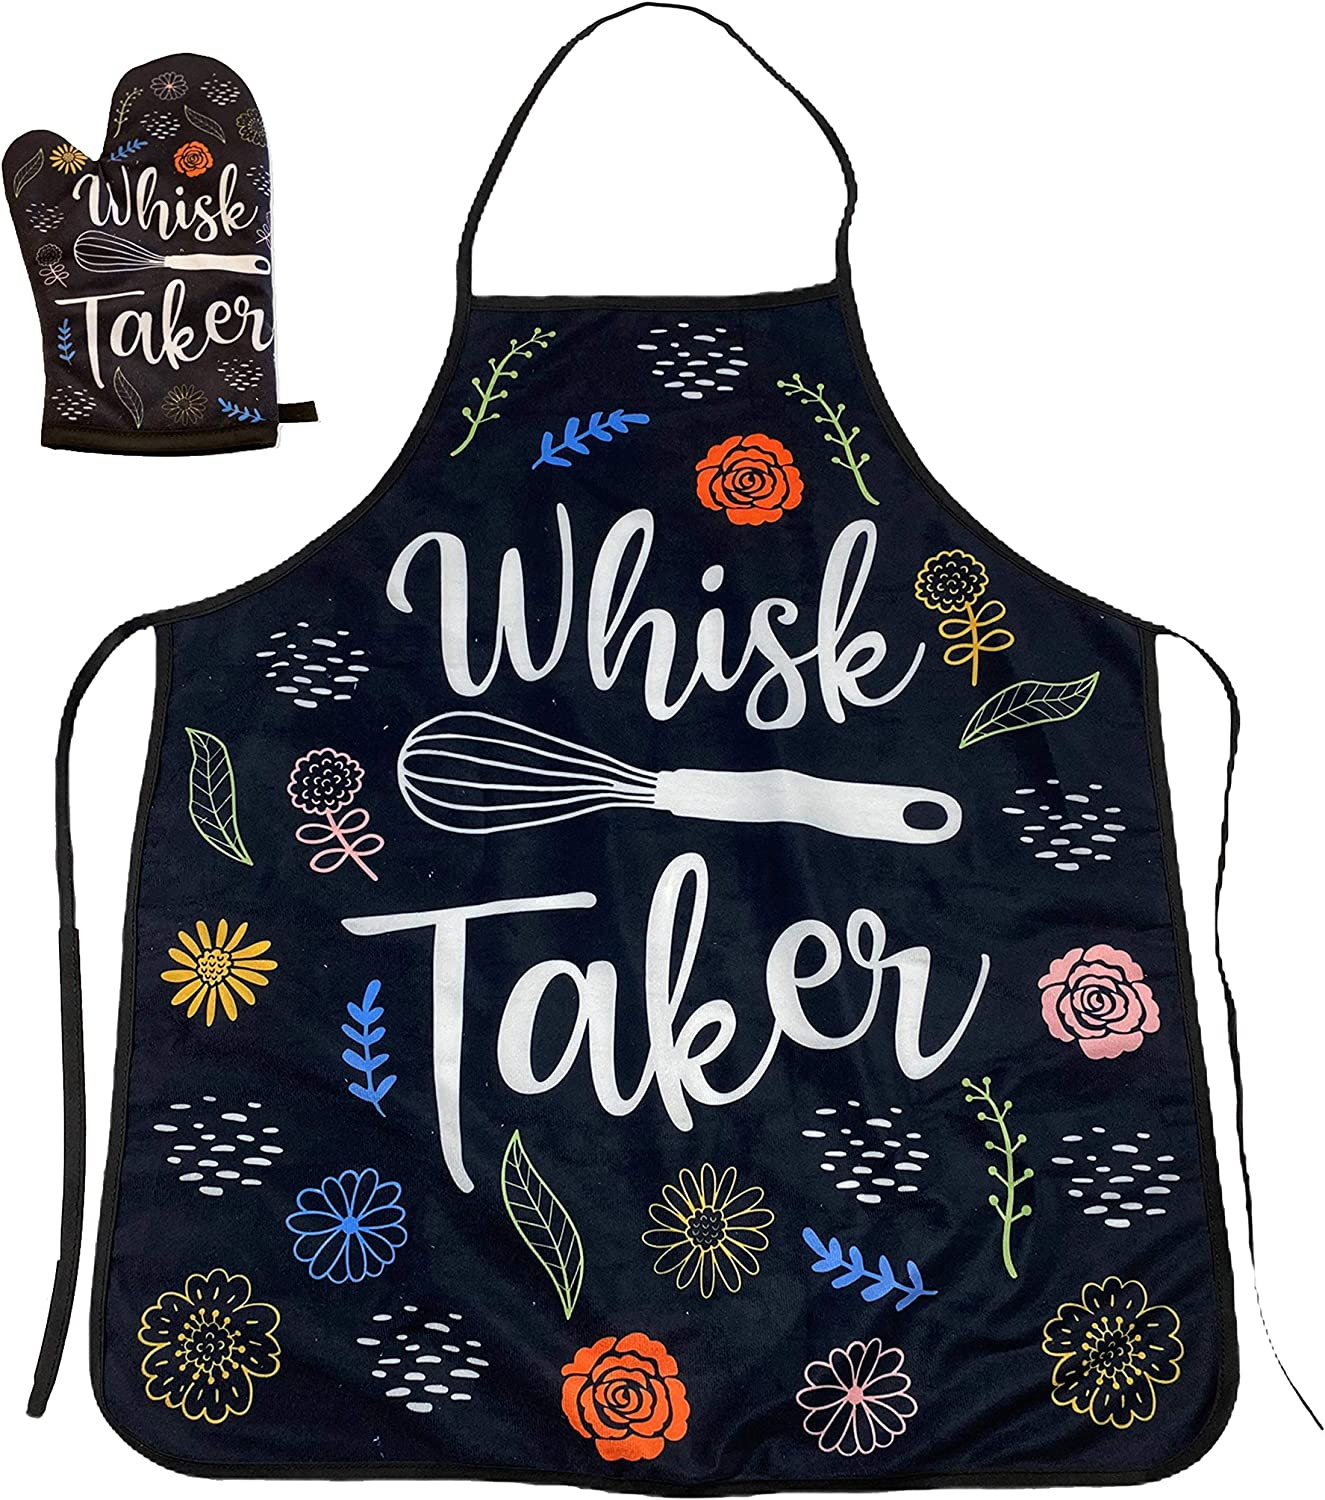 Crazy Dog T-Shirts Whisk Taker Funny Kitchen Cooking Baking Graphic Novelty Kitchen Accessories (Oven Mitt + Apron)